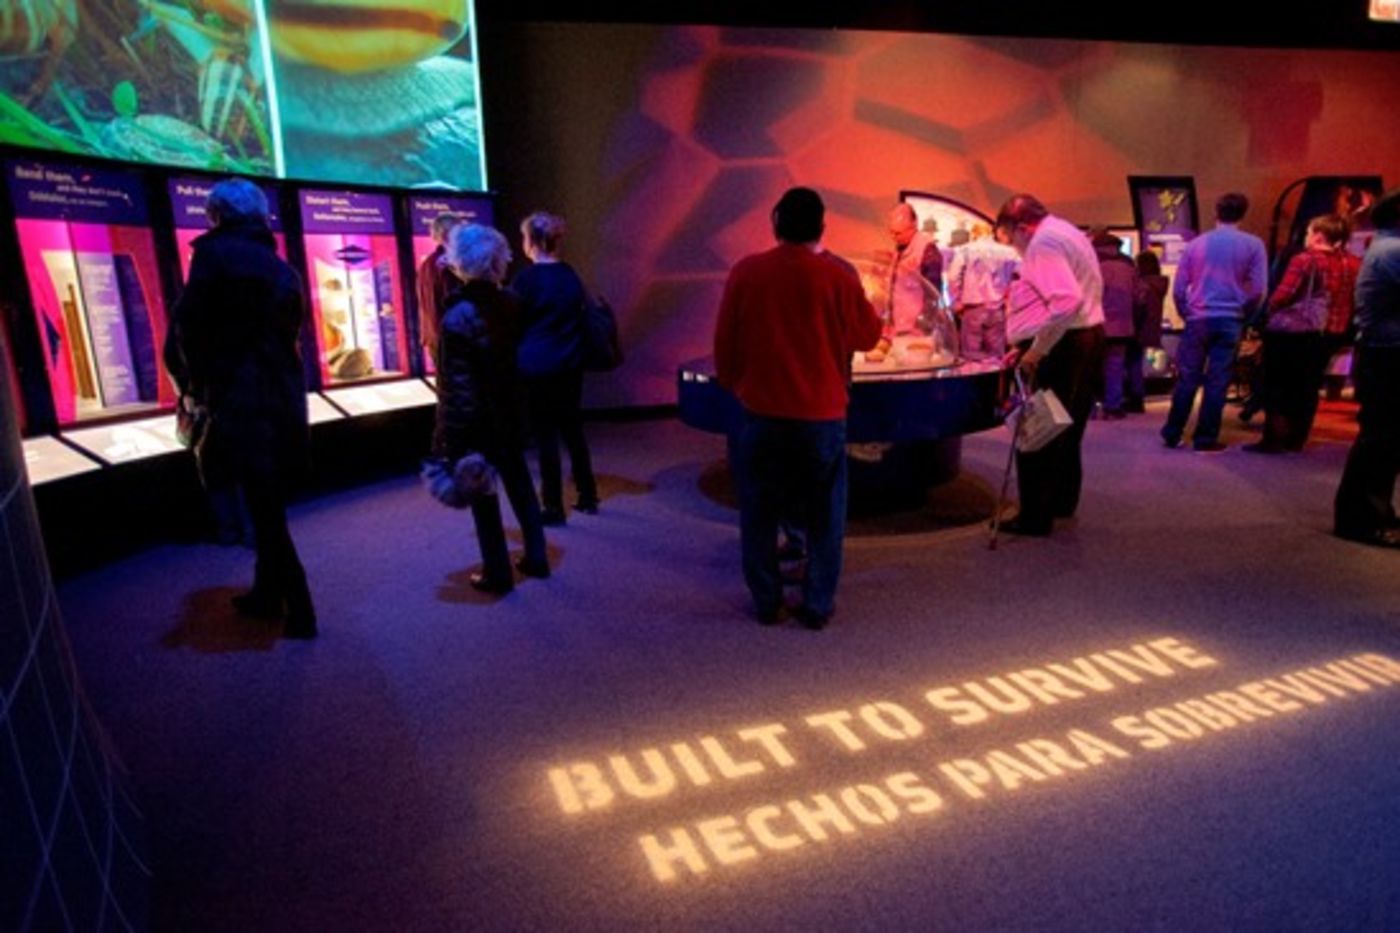 Visitors explore a temporary exhibition, The Machine Inside: Biomechanics.